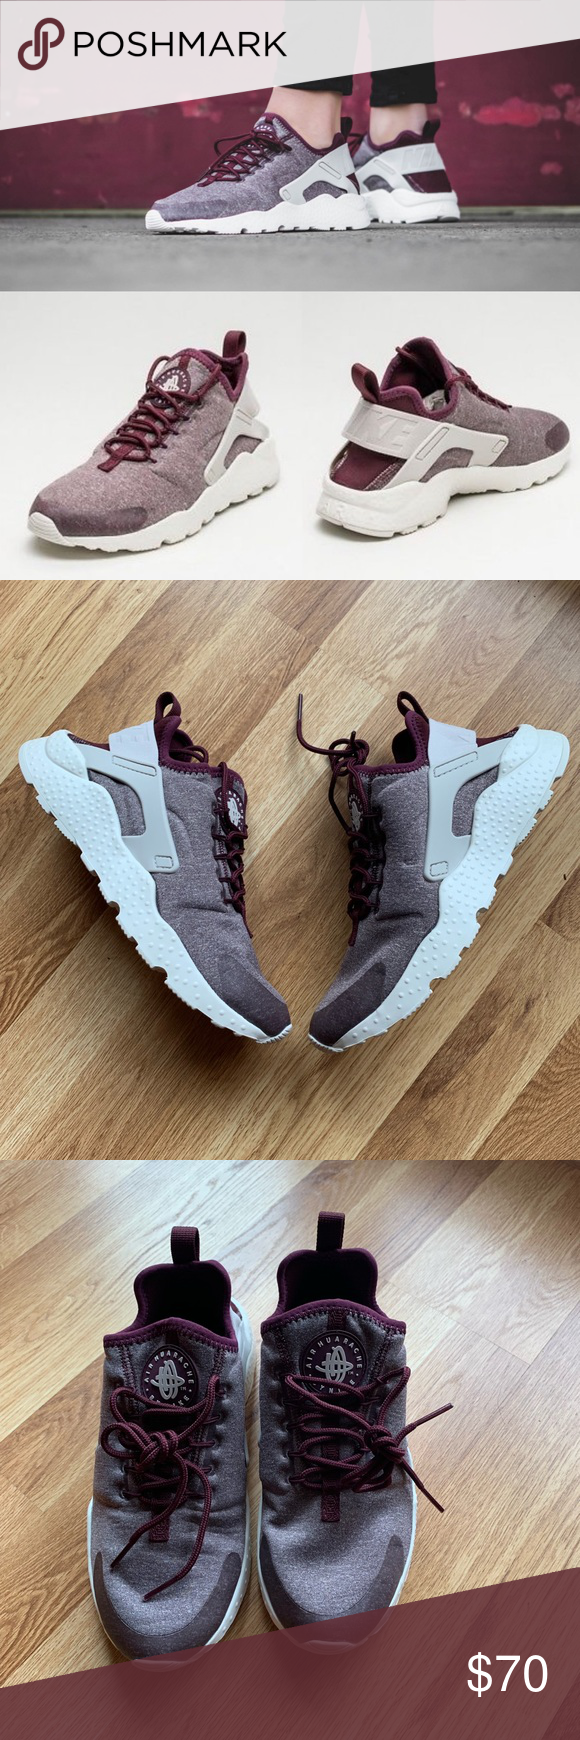 5c0b7a32e72f Nike Air Huarache Run Ultra SE Night Maroon Size 7 New in box Women s size  7 Color  Night maroon bordeaux Smoke free and pet free home Nike Shoes  Sneakers